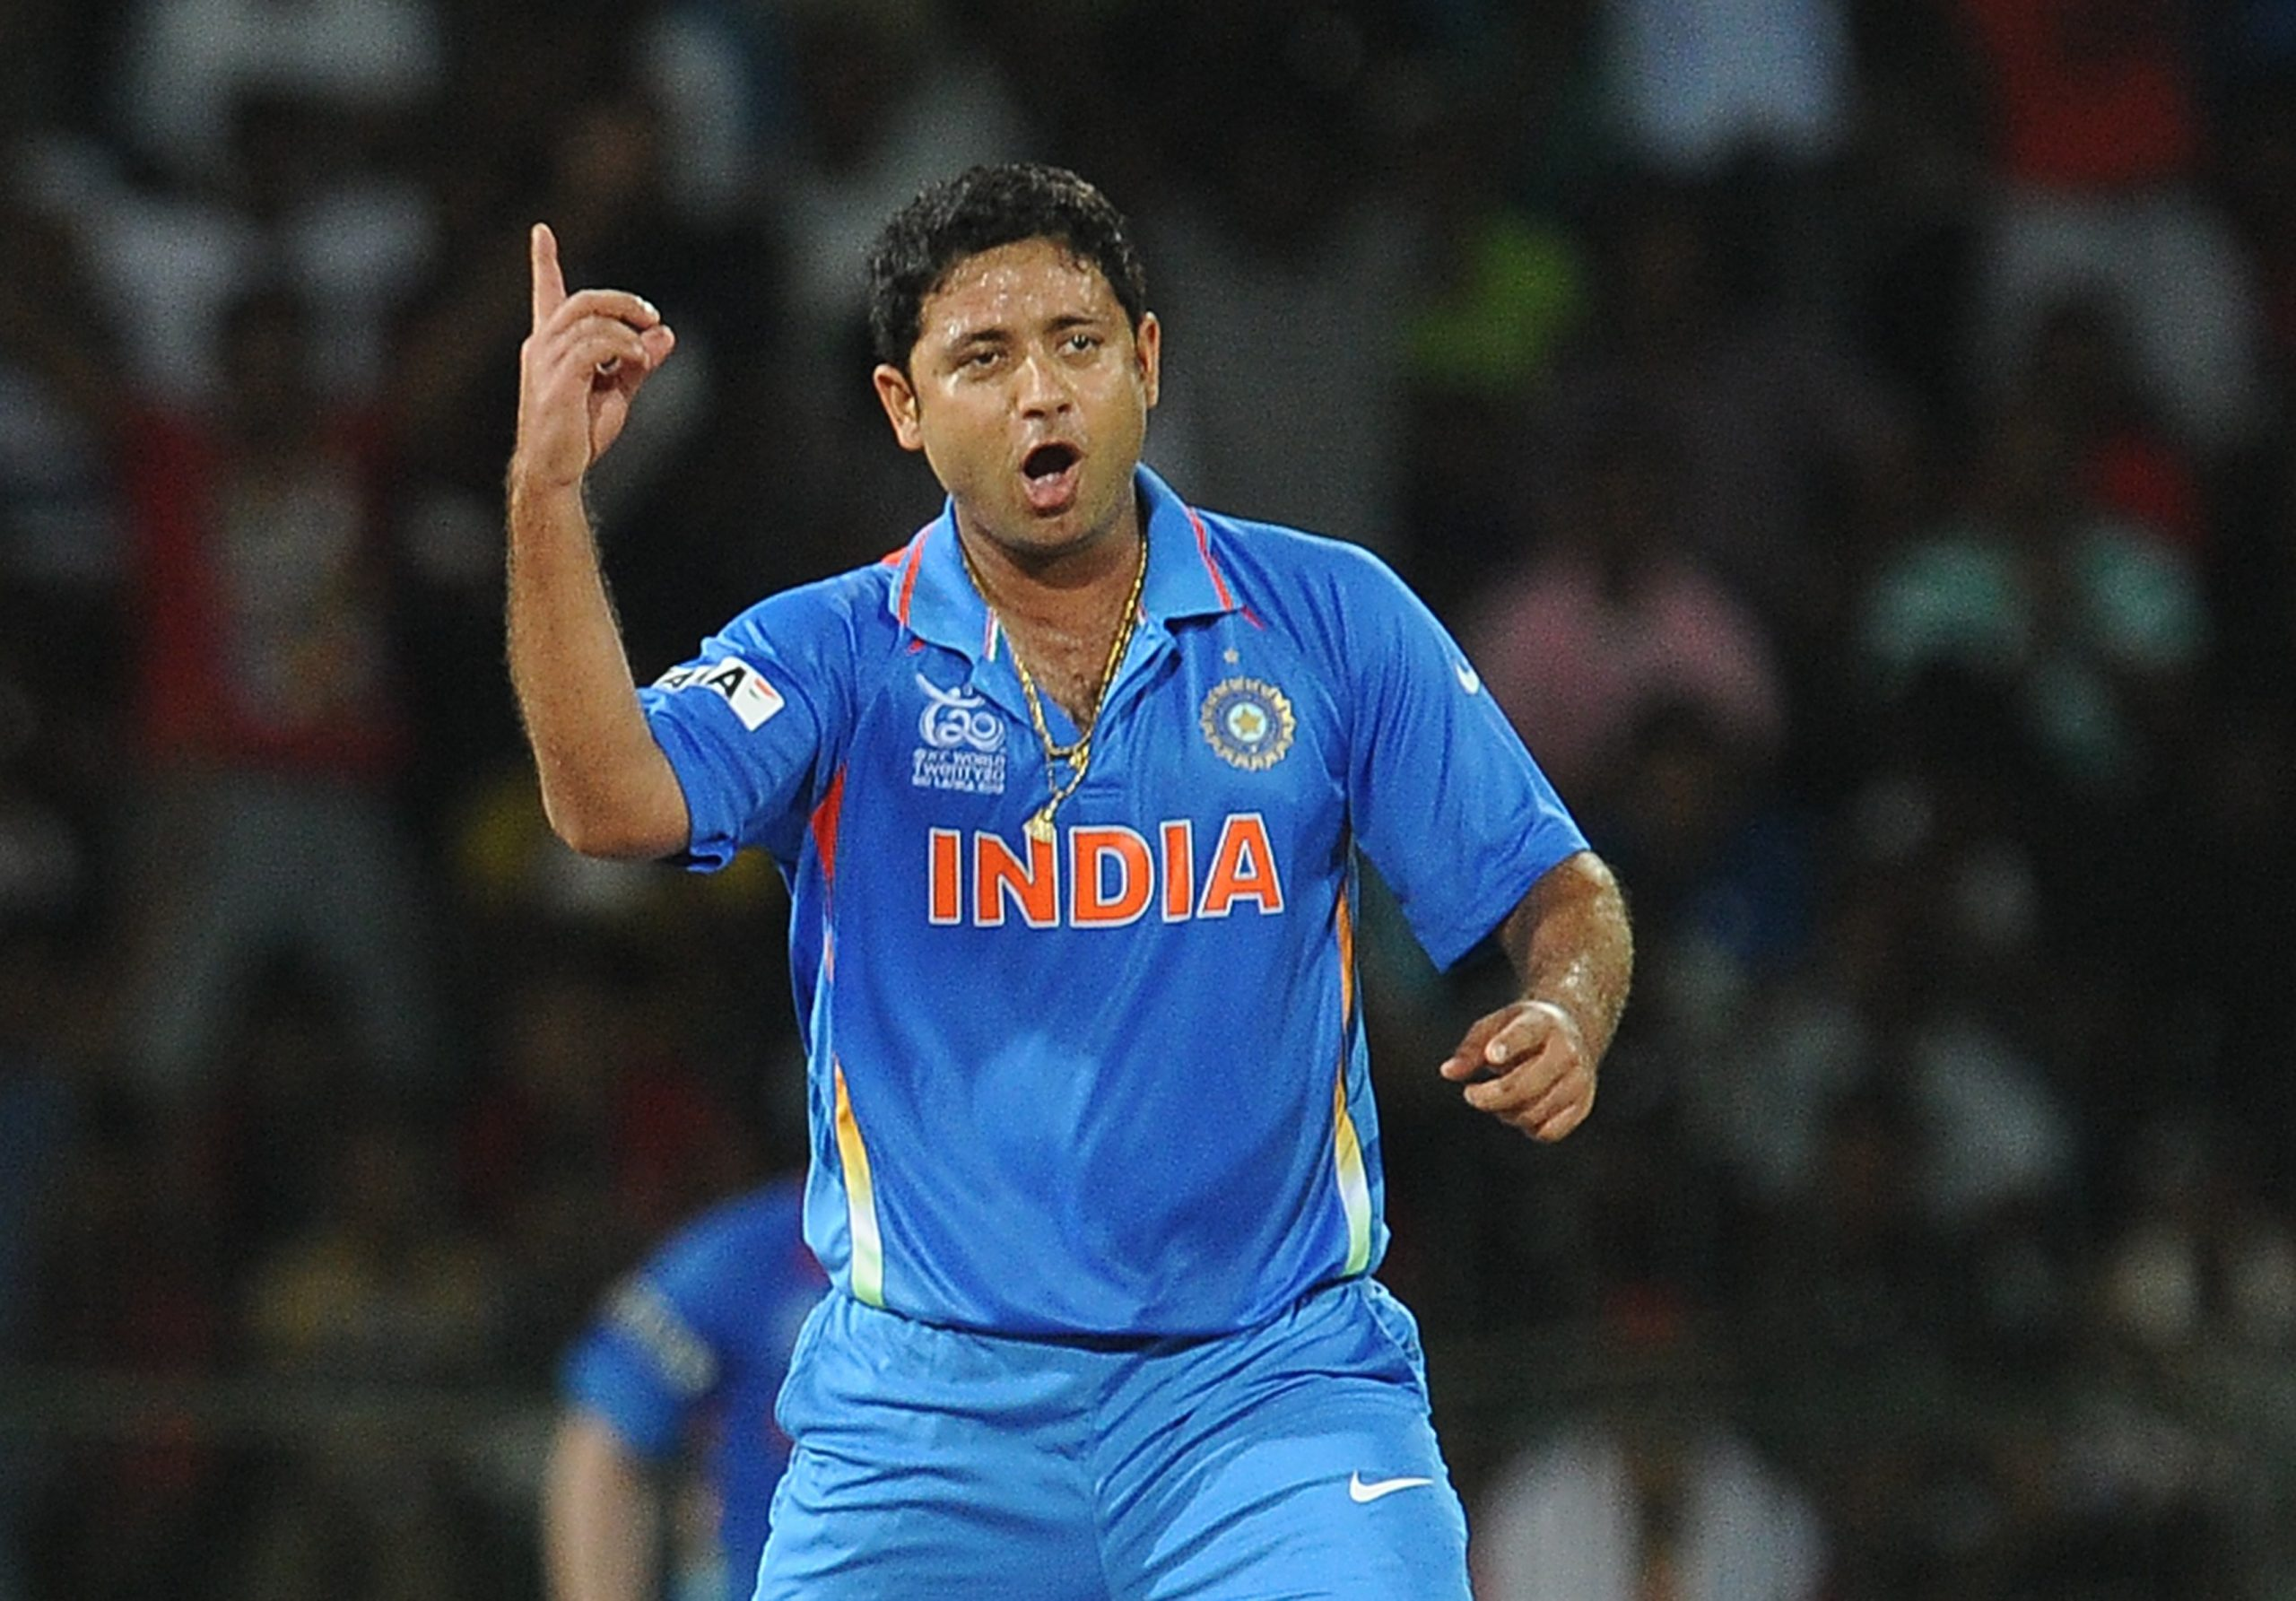 Piyush Chawla Biography, Age, Height, Career, Facts and Net Worth